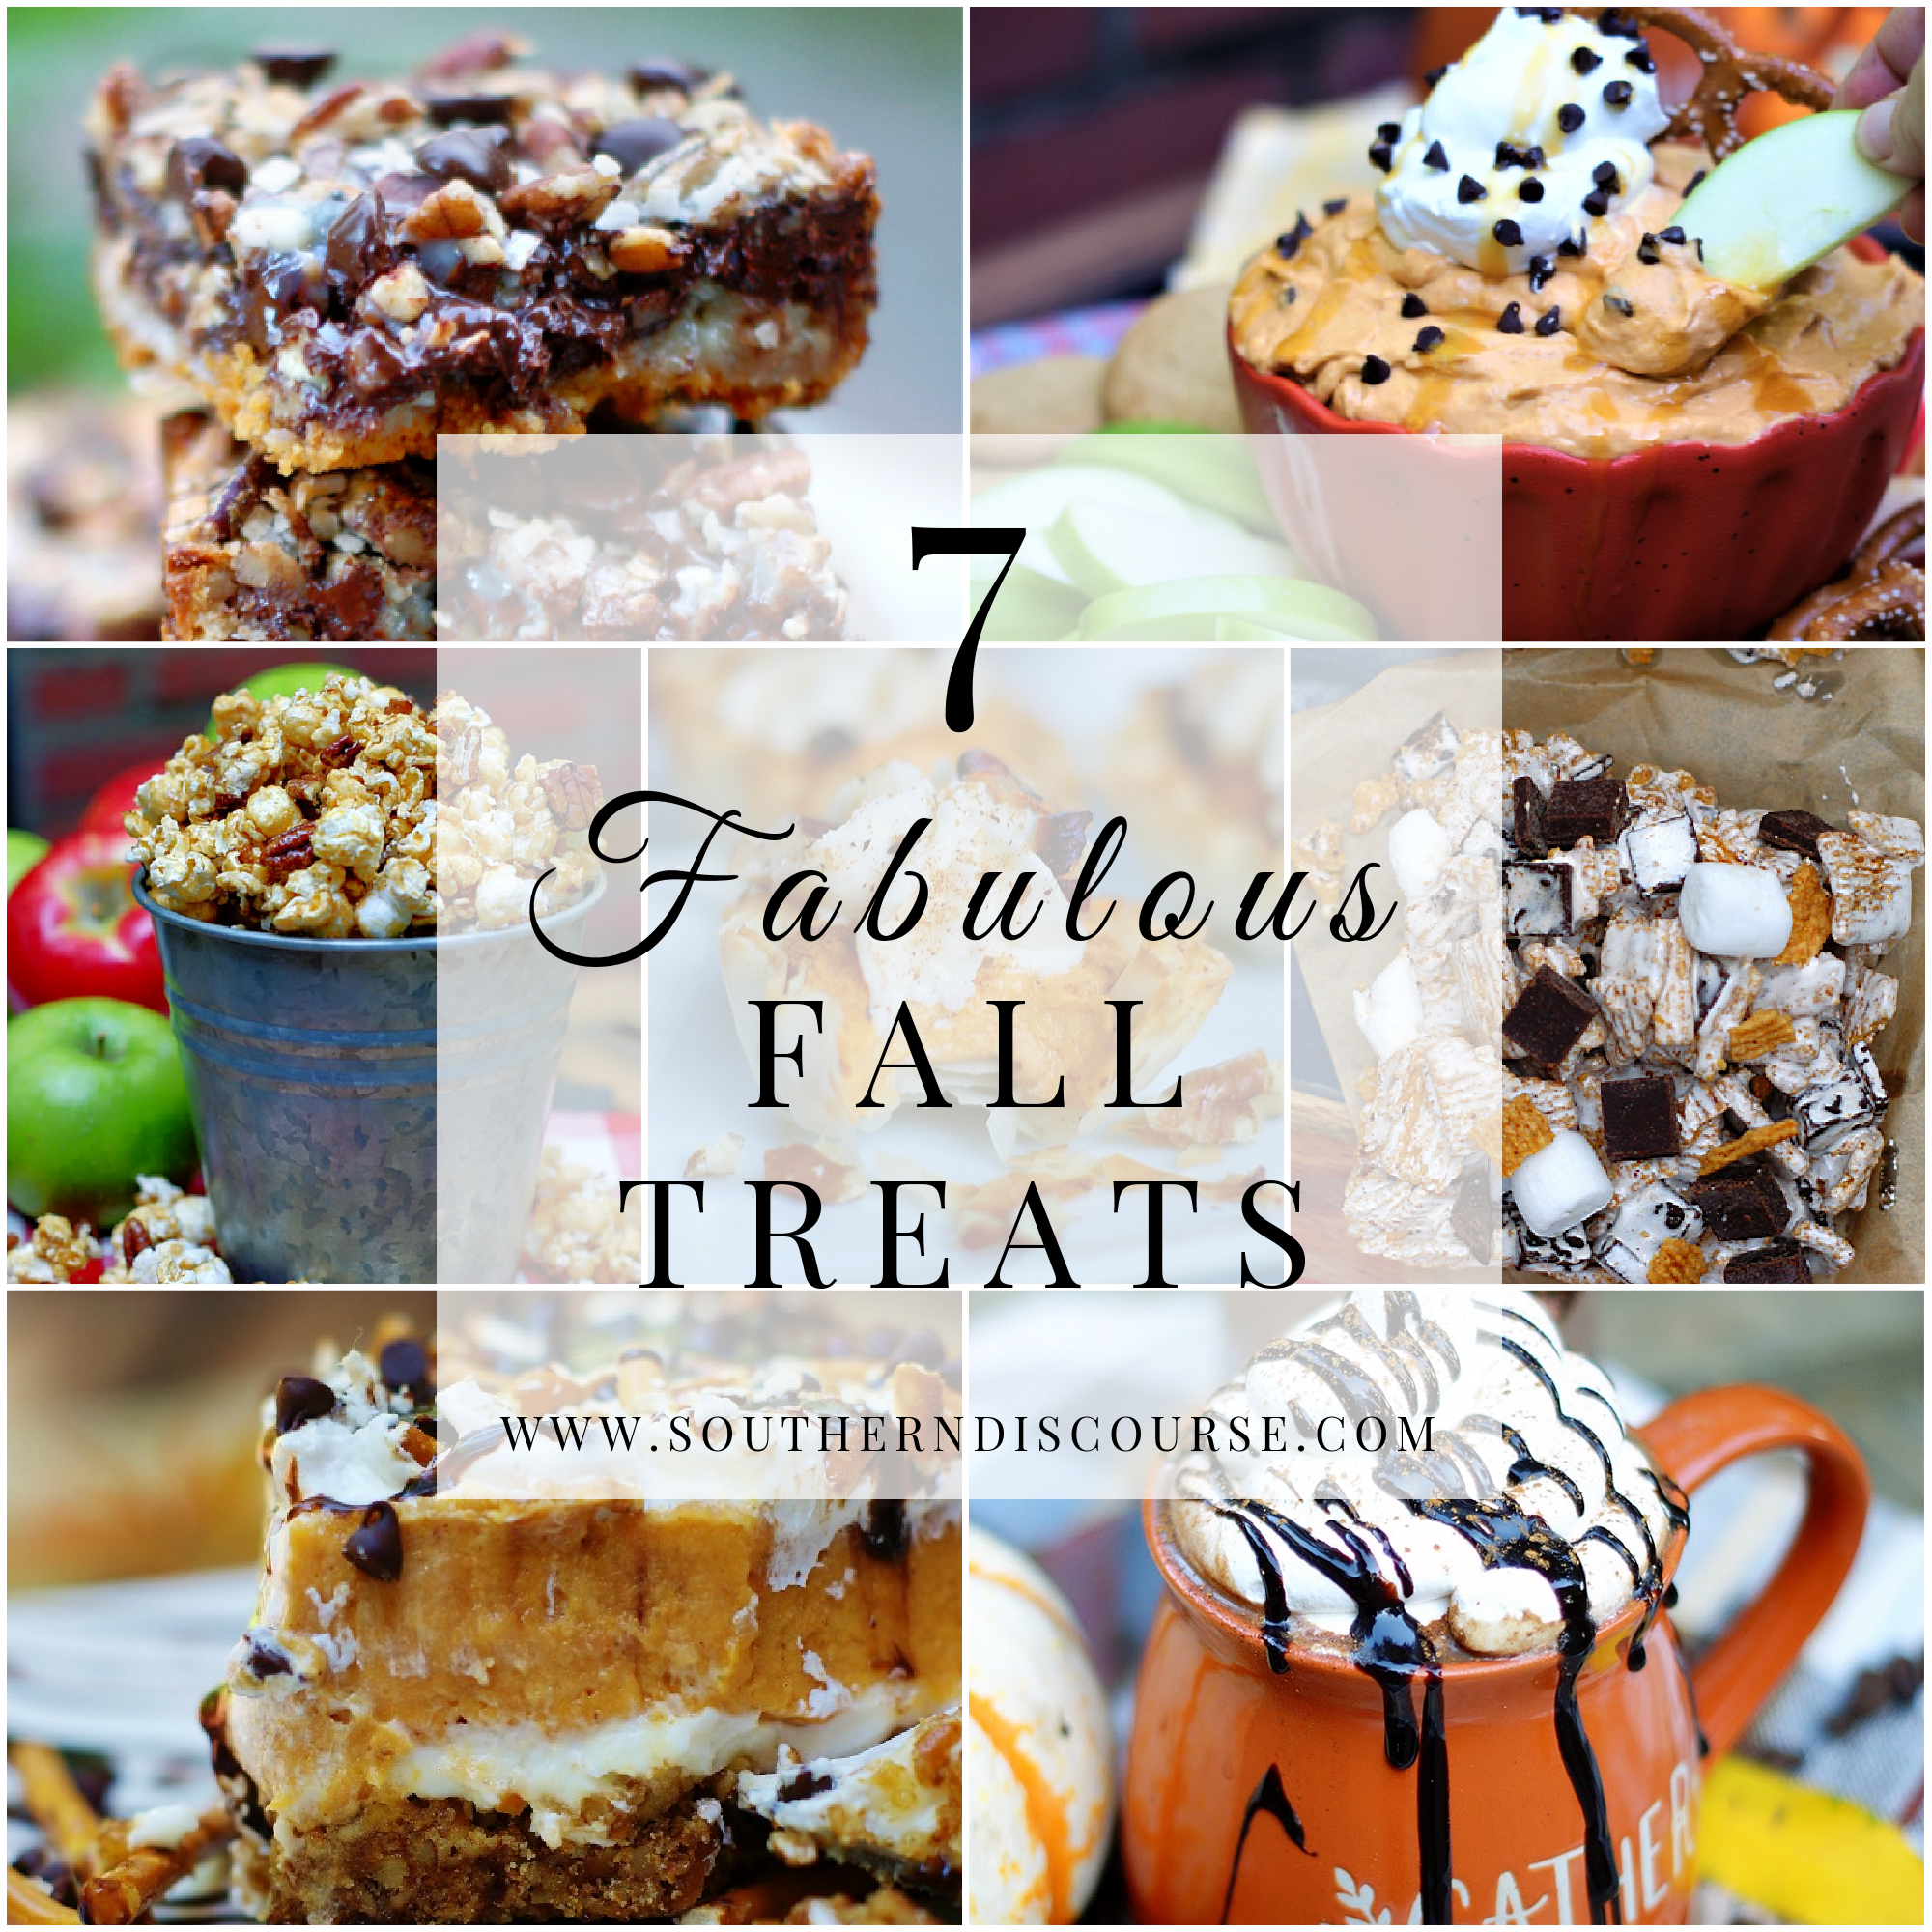 Collage of Fall treat recipes for easy fall baking.